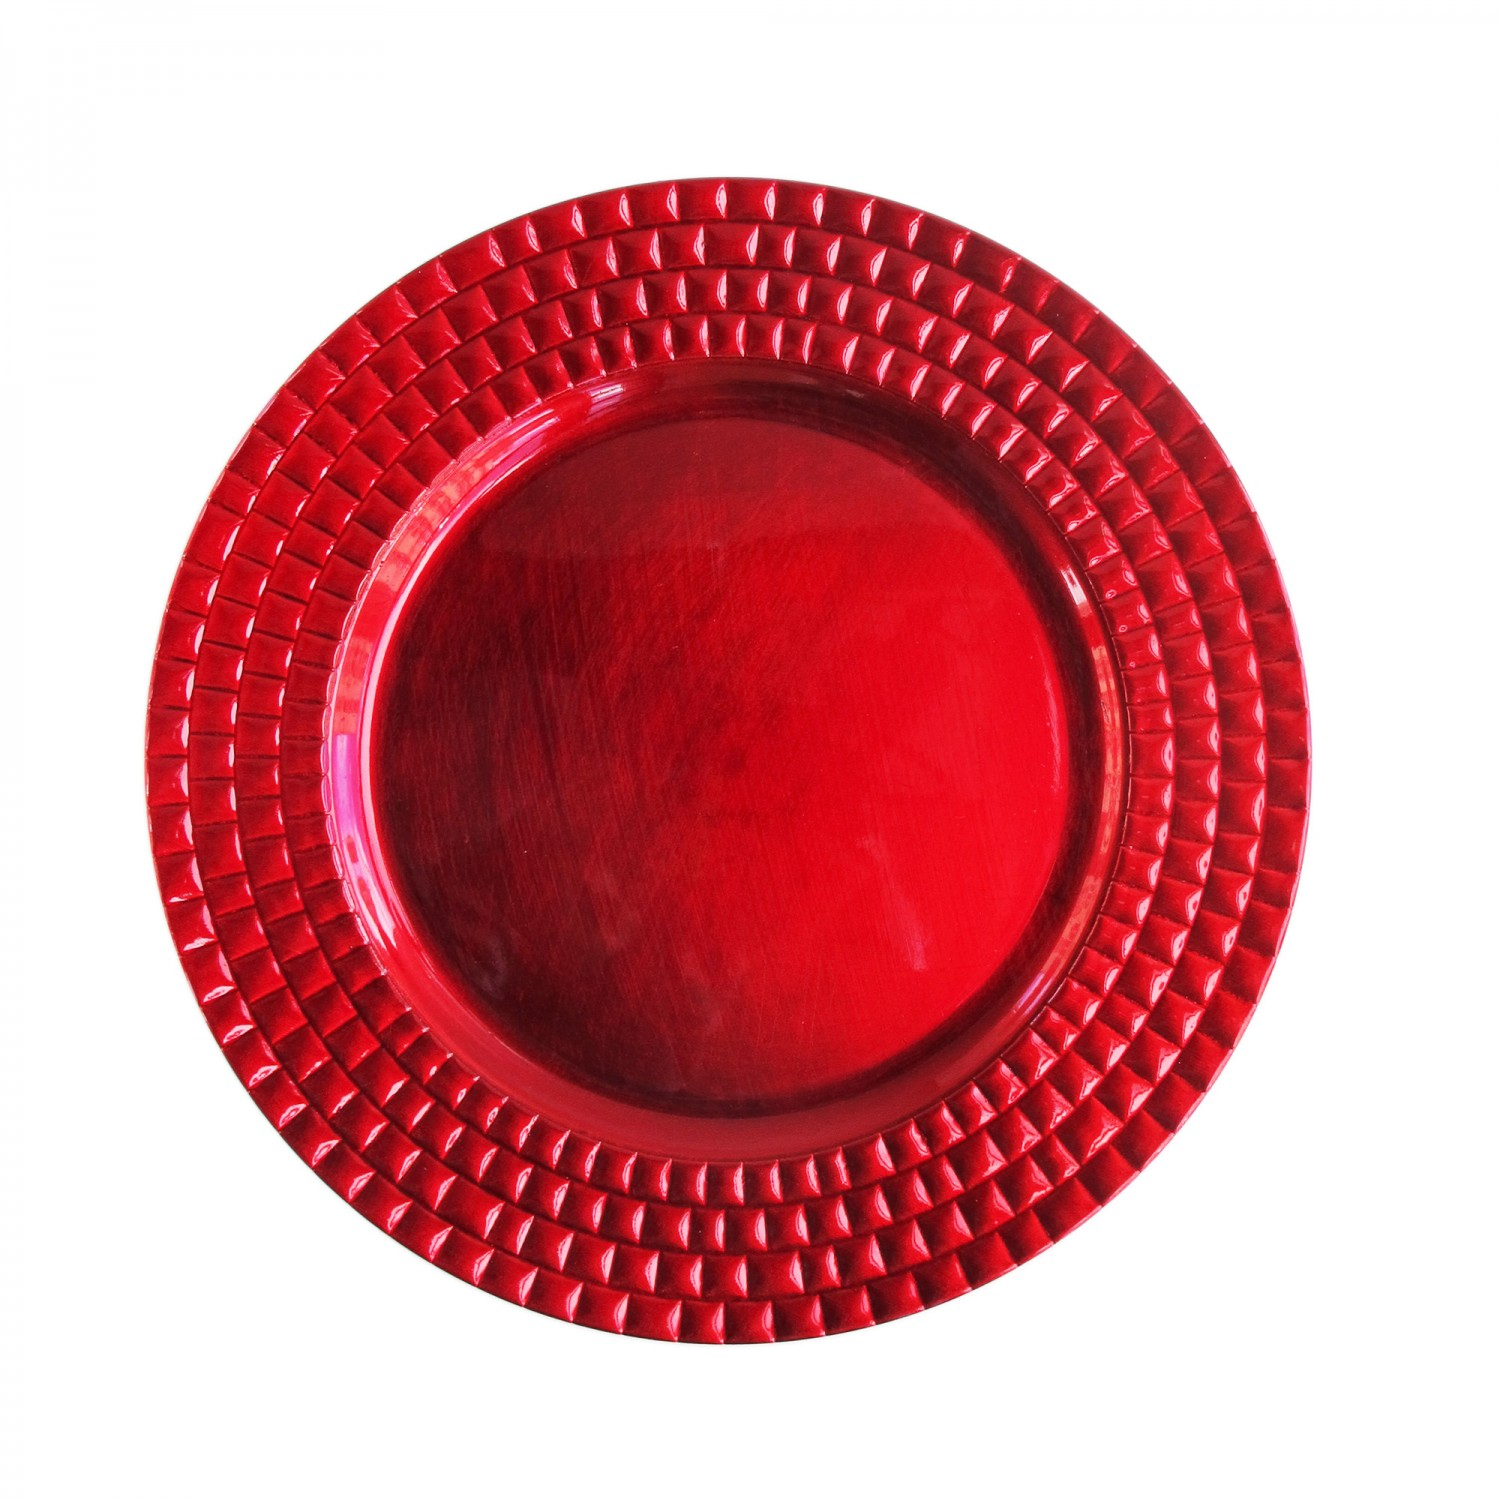 The Jay Companies 1182771 Round Red Tiled Charger Plate 13""